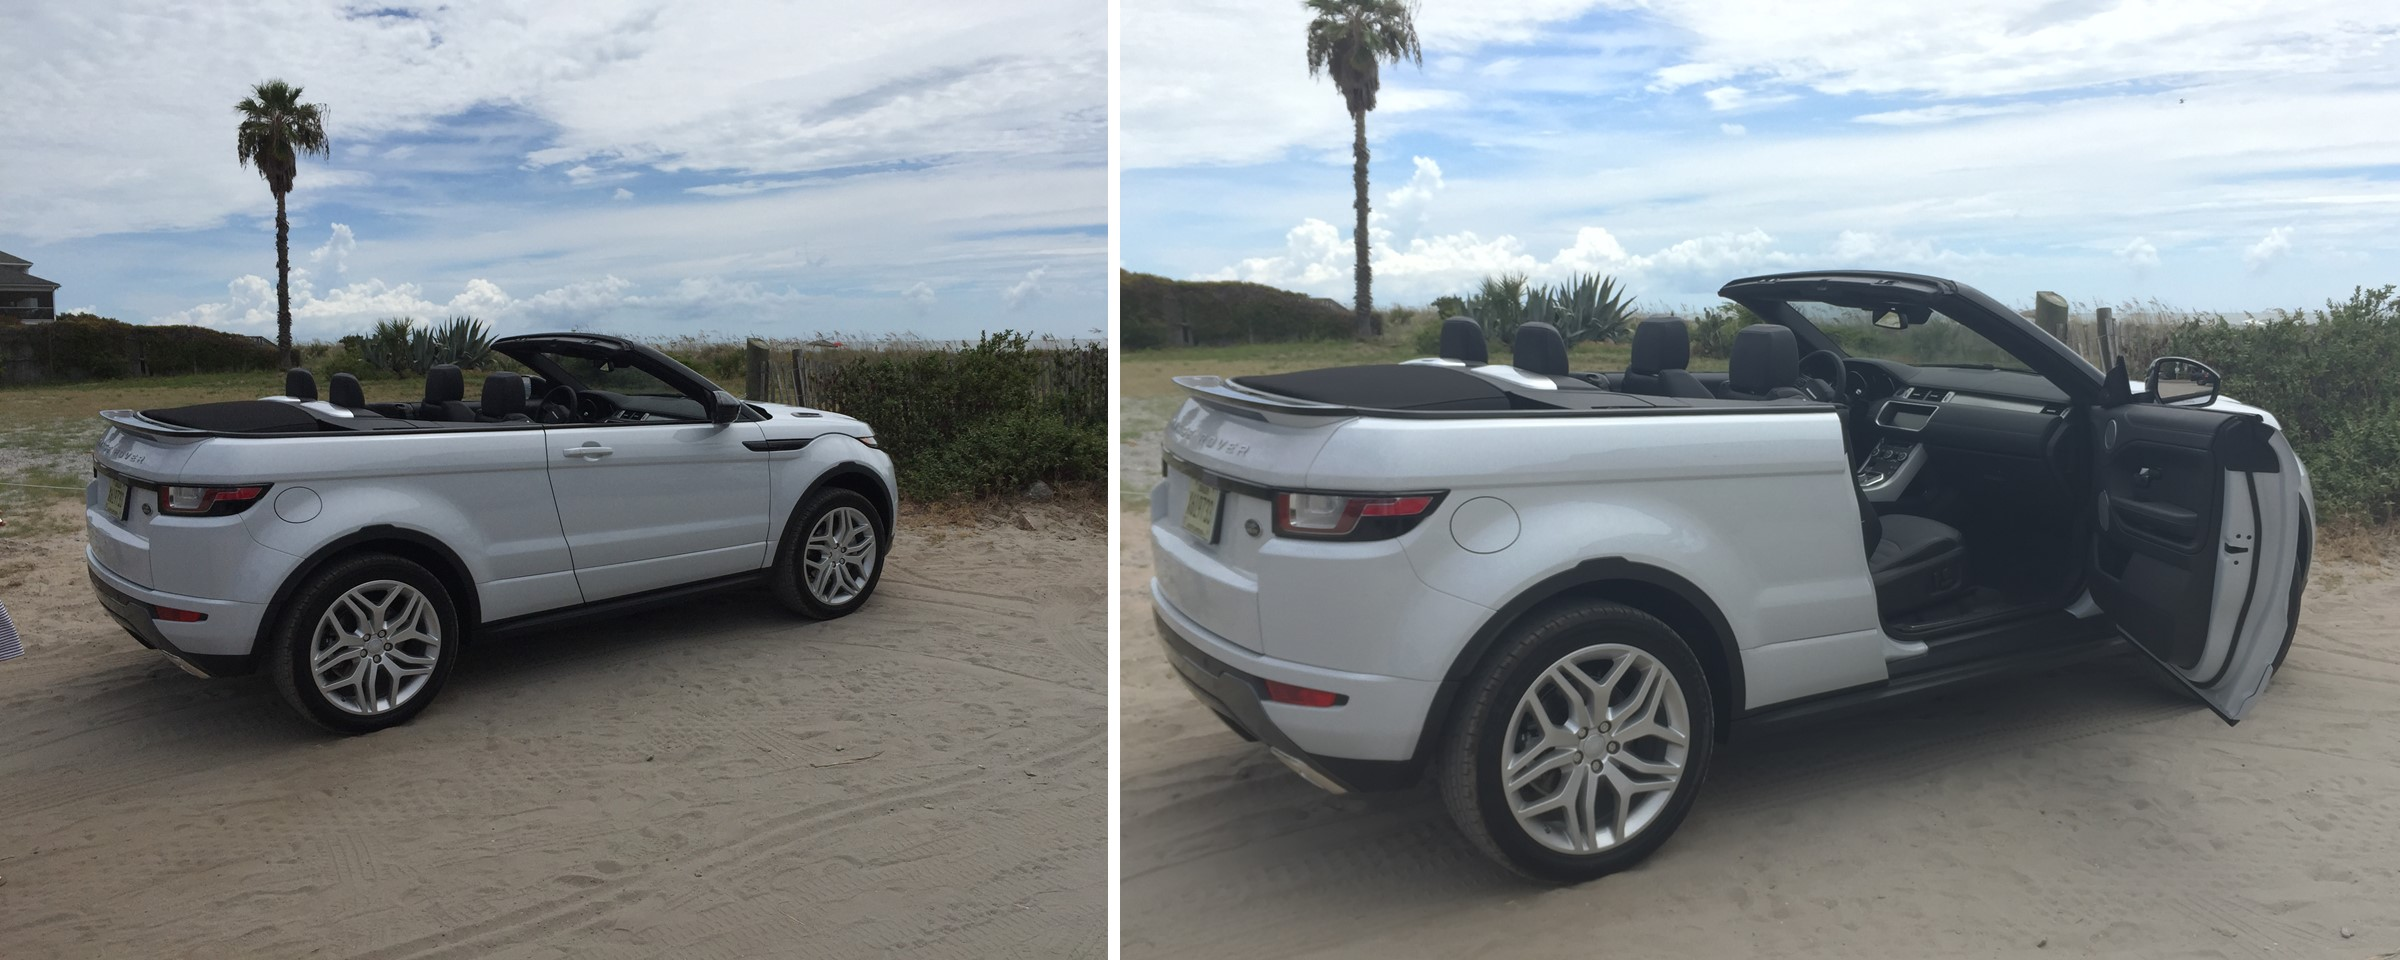 Spanning the gap a review of the range rover evoque for Baker motor company land rover